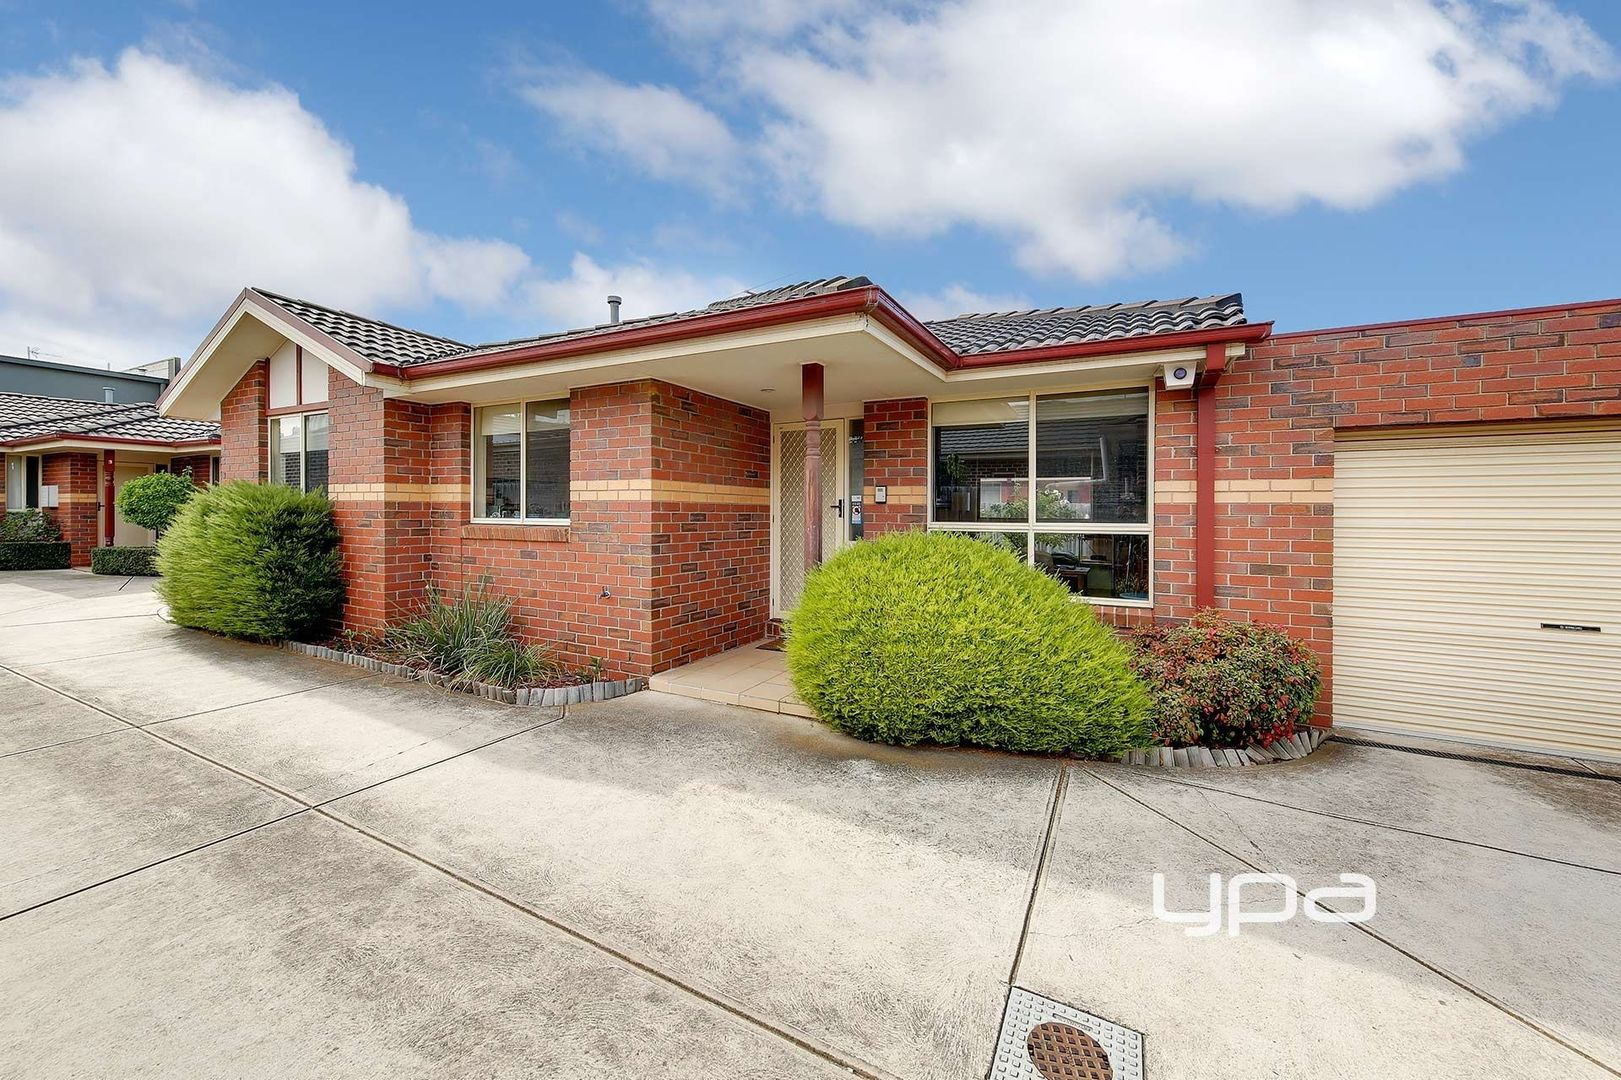 2/52 McIntosh Street, Airport West VIC 3042, Image 0